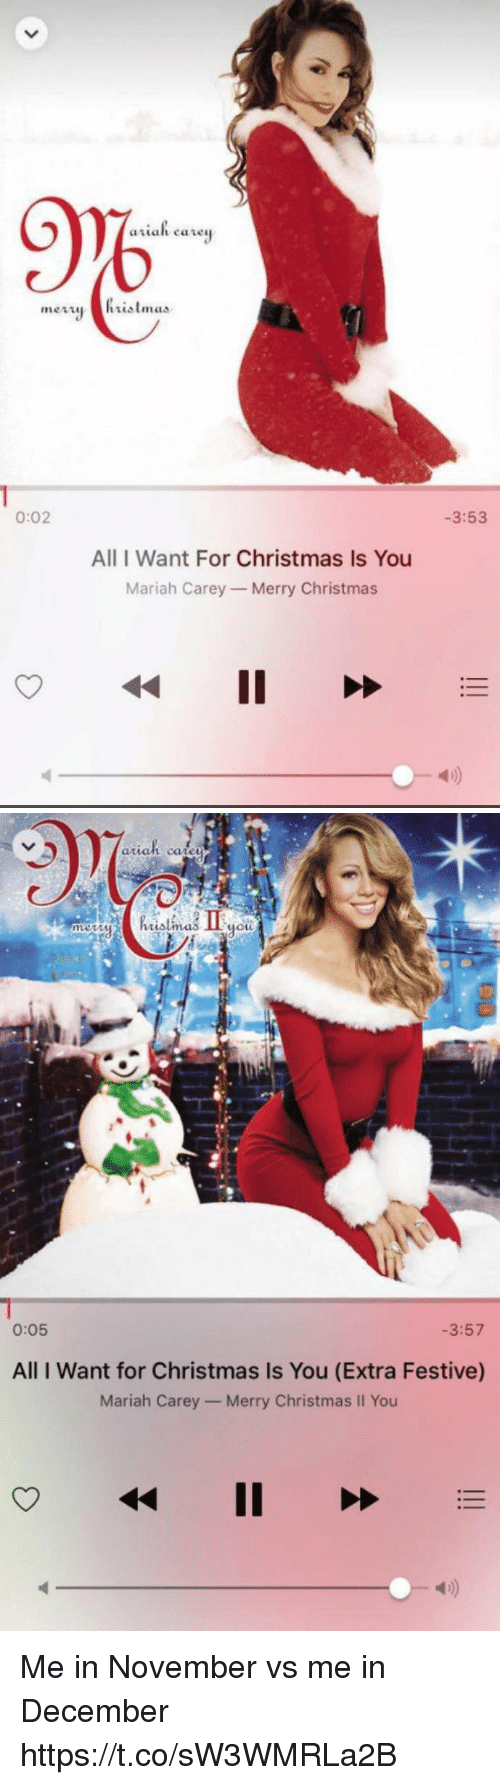 All I Want for Christmas Is You, Christmas, and Mariah Carey: 9%  0:02  -3:53  All I Want For Christmas Is You  Mariah Carey Merry Christmas  4D)   aran ca  mmem  MOLL  0:05  -3:57  All I Want for Christmas Is You (Extra Festive)  Mariah Carey- Merry Christmas II You  4) Me in November vs me in December https://t.co/sW3WMRLa2B